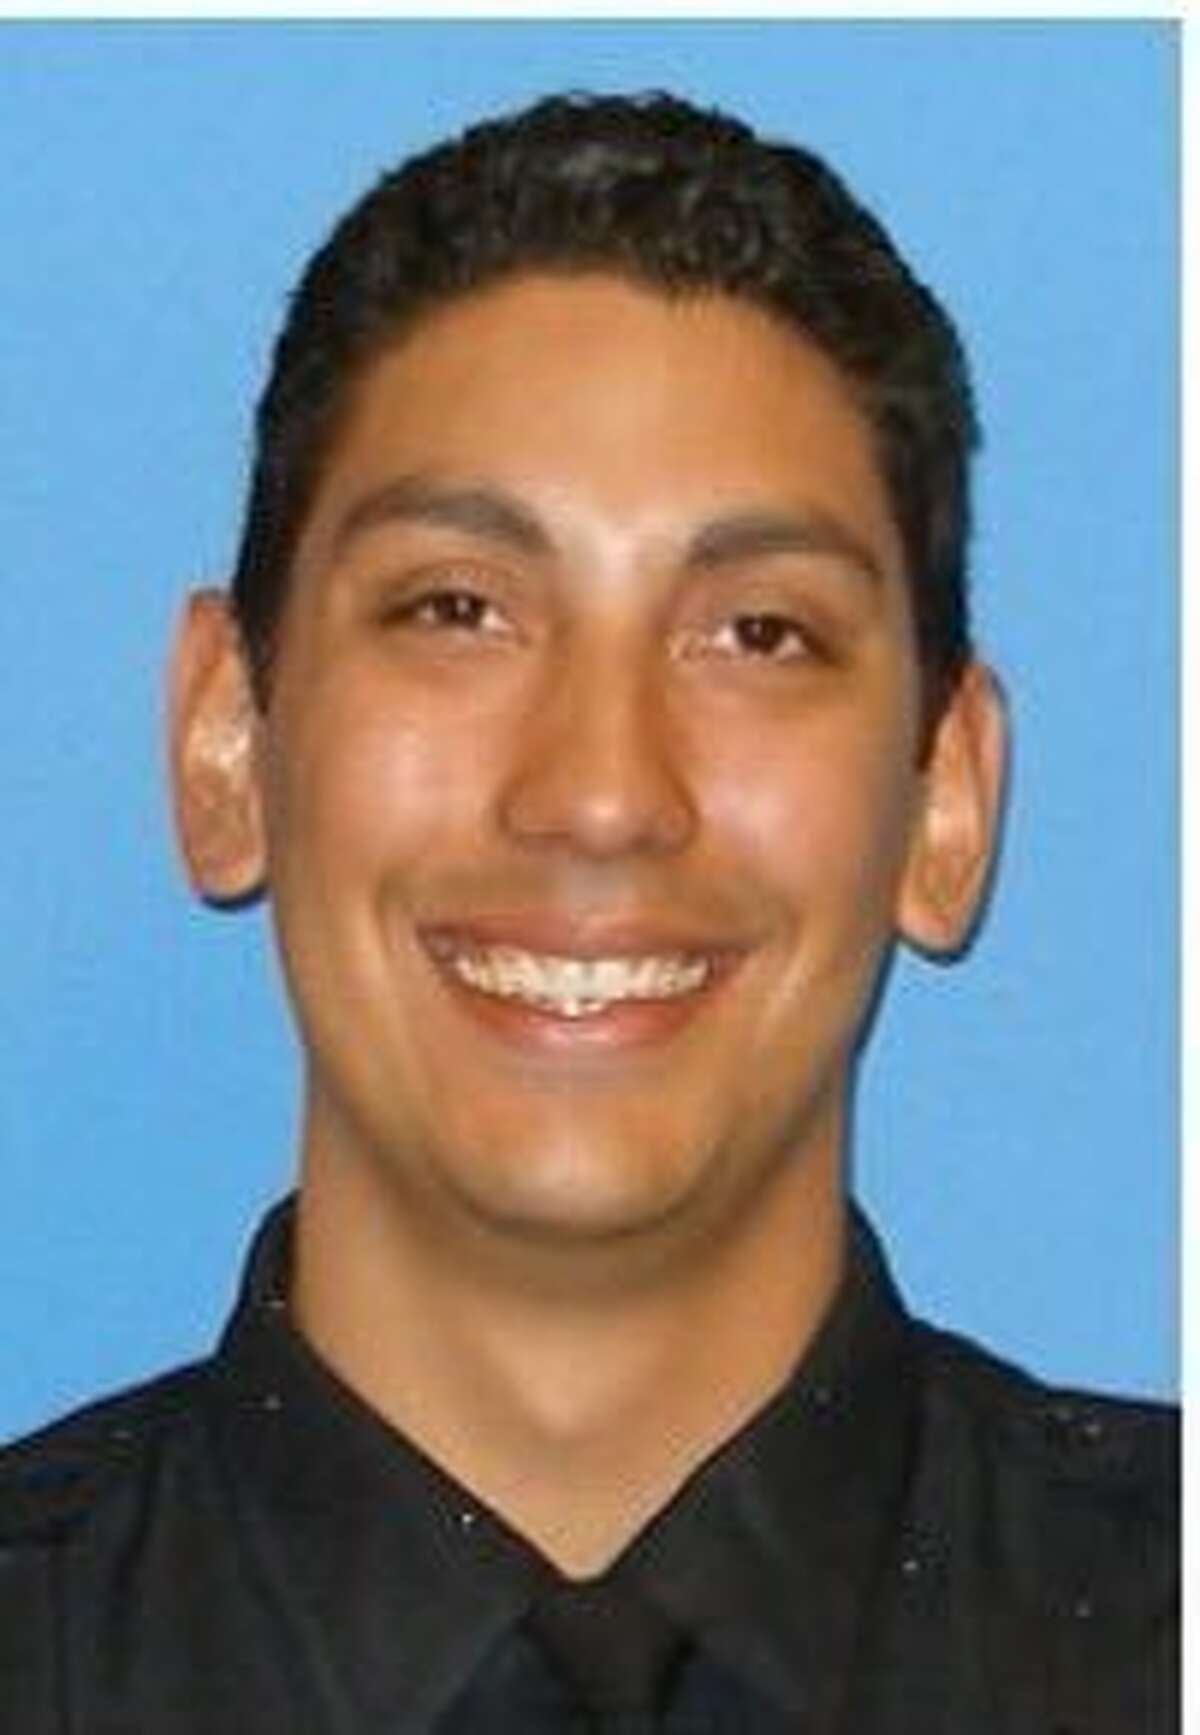 San Francisco firefighter-paramedic Jason Cortez died in a training accident Wedensday morning.